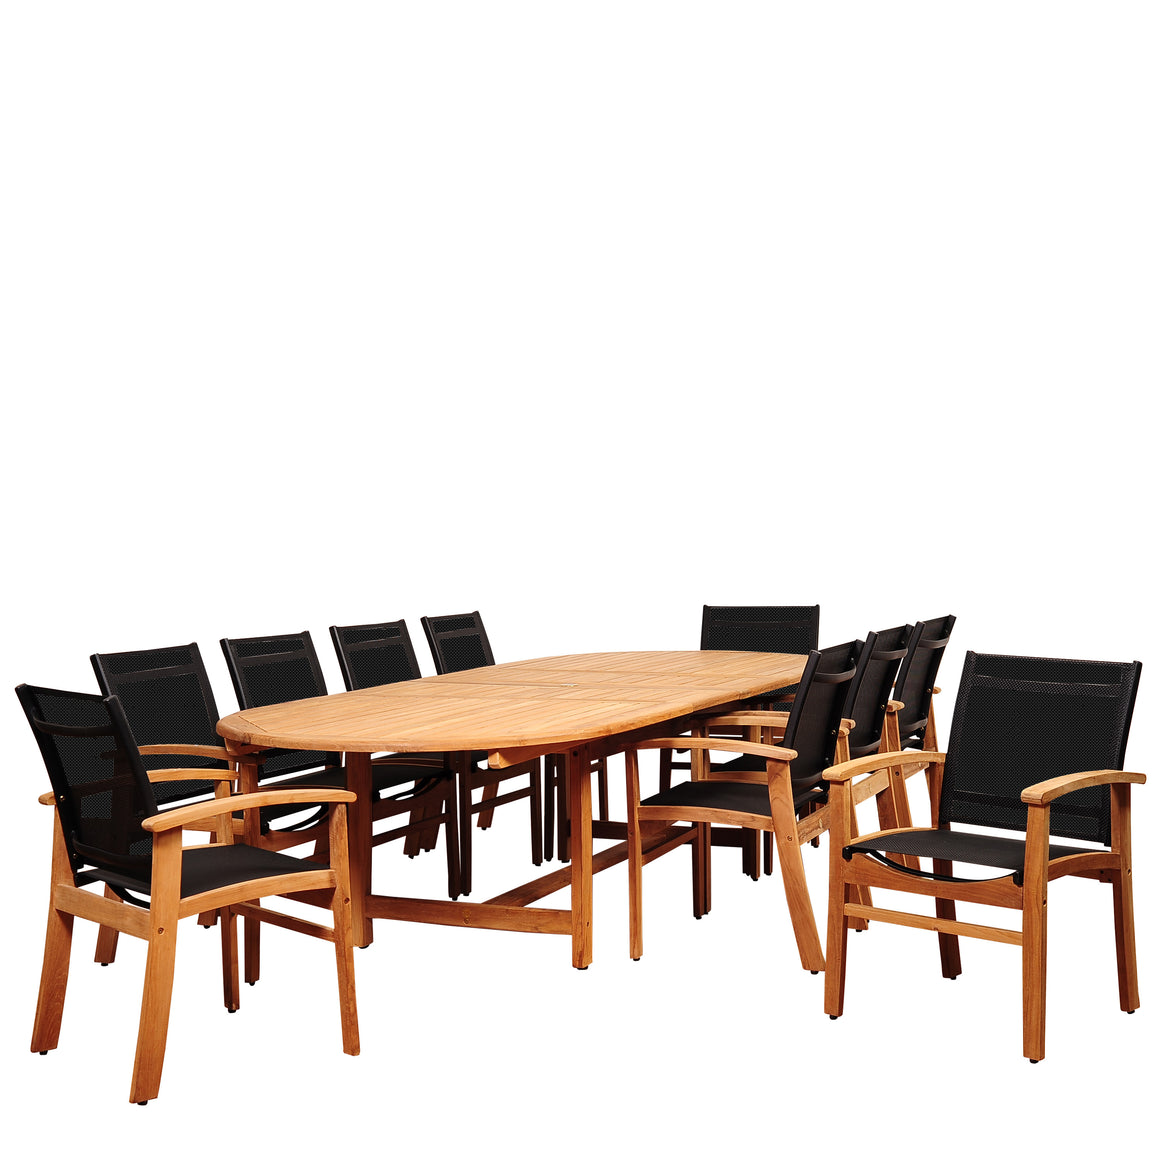 Amazonia Edenton 11 Piece Teak Double , International Home Miami- grayburd